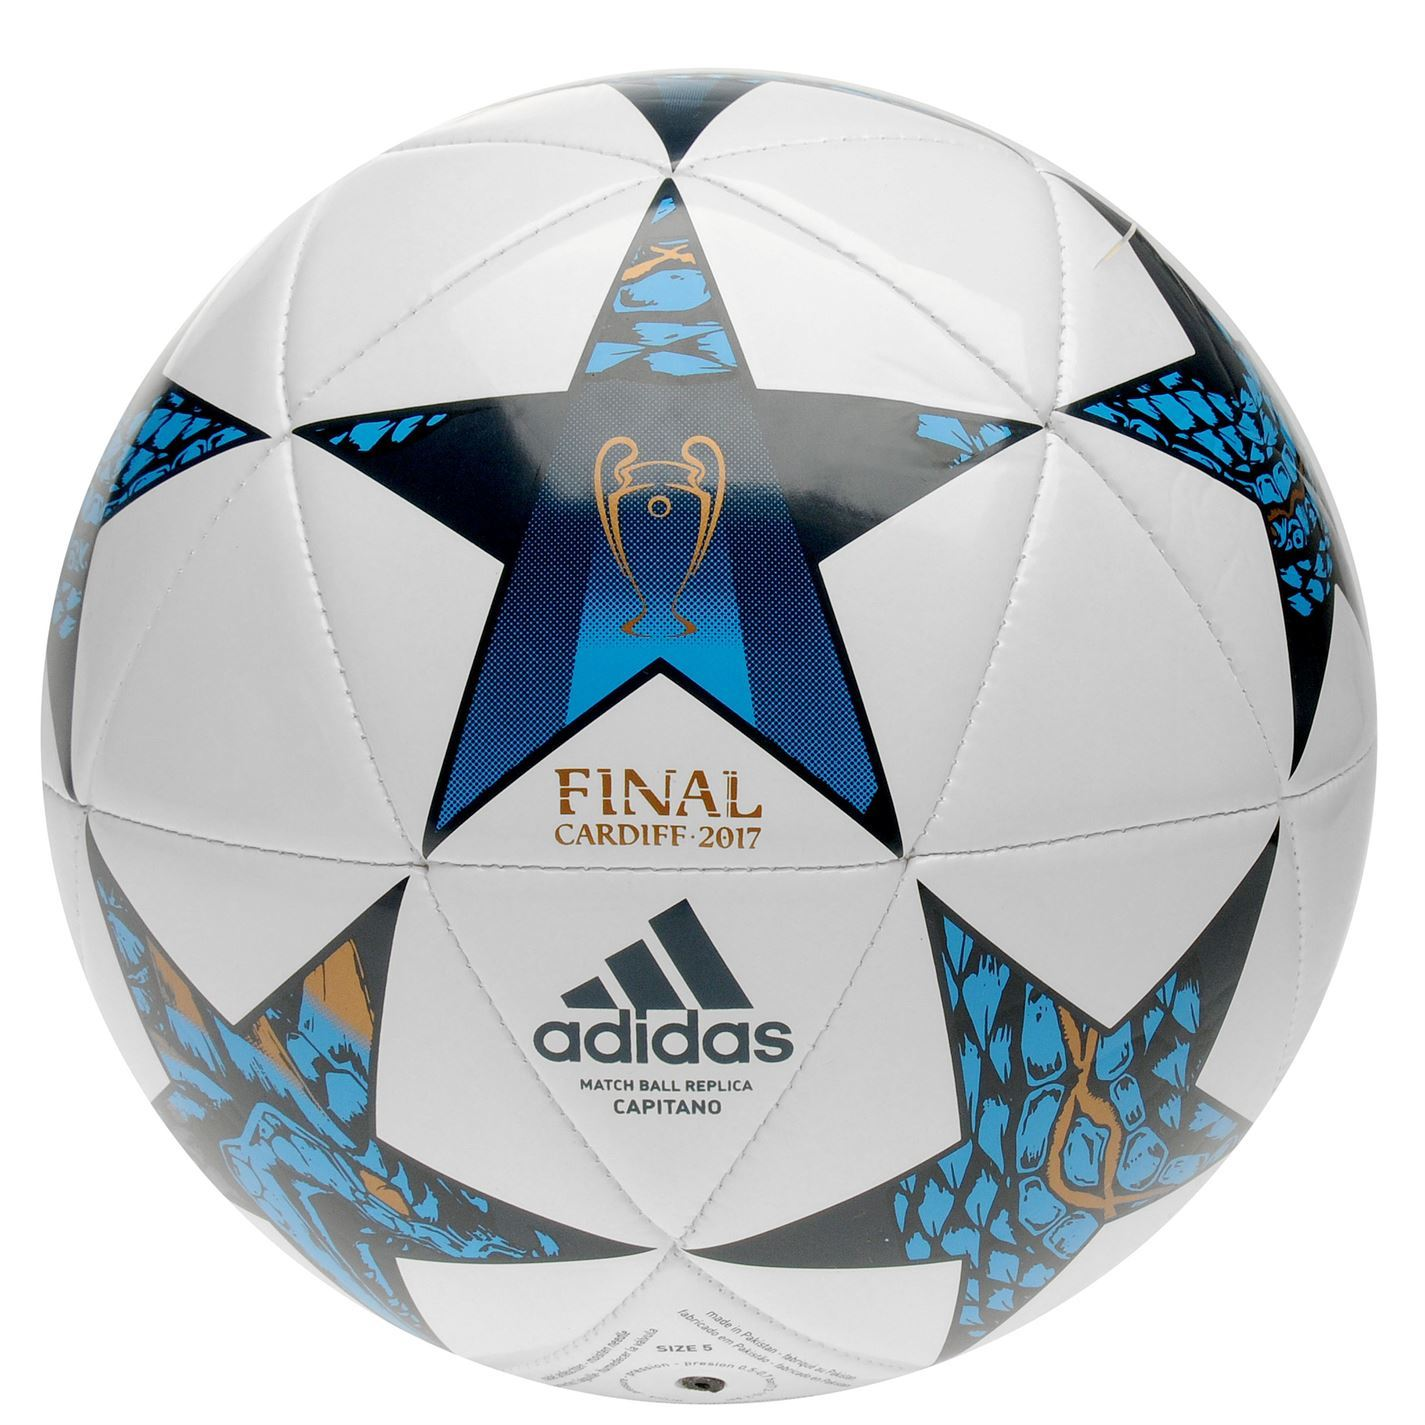 adidas UEFA Champions League Final 2017 Football Ball ...